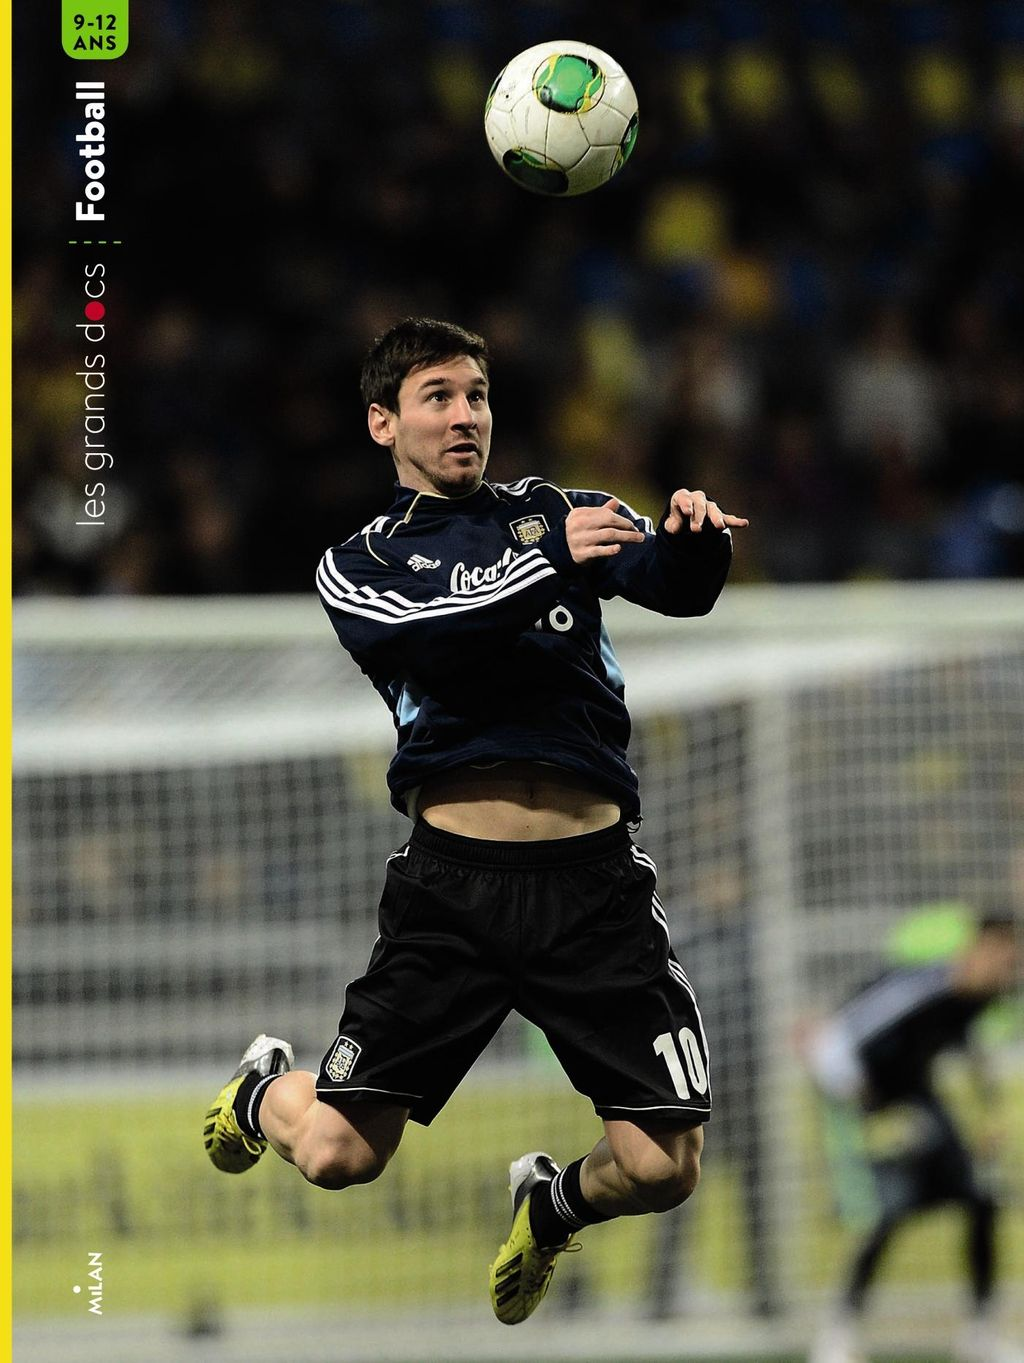 «Le foot» cover